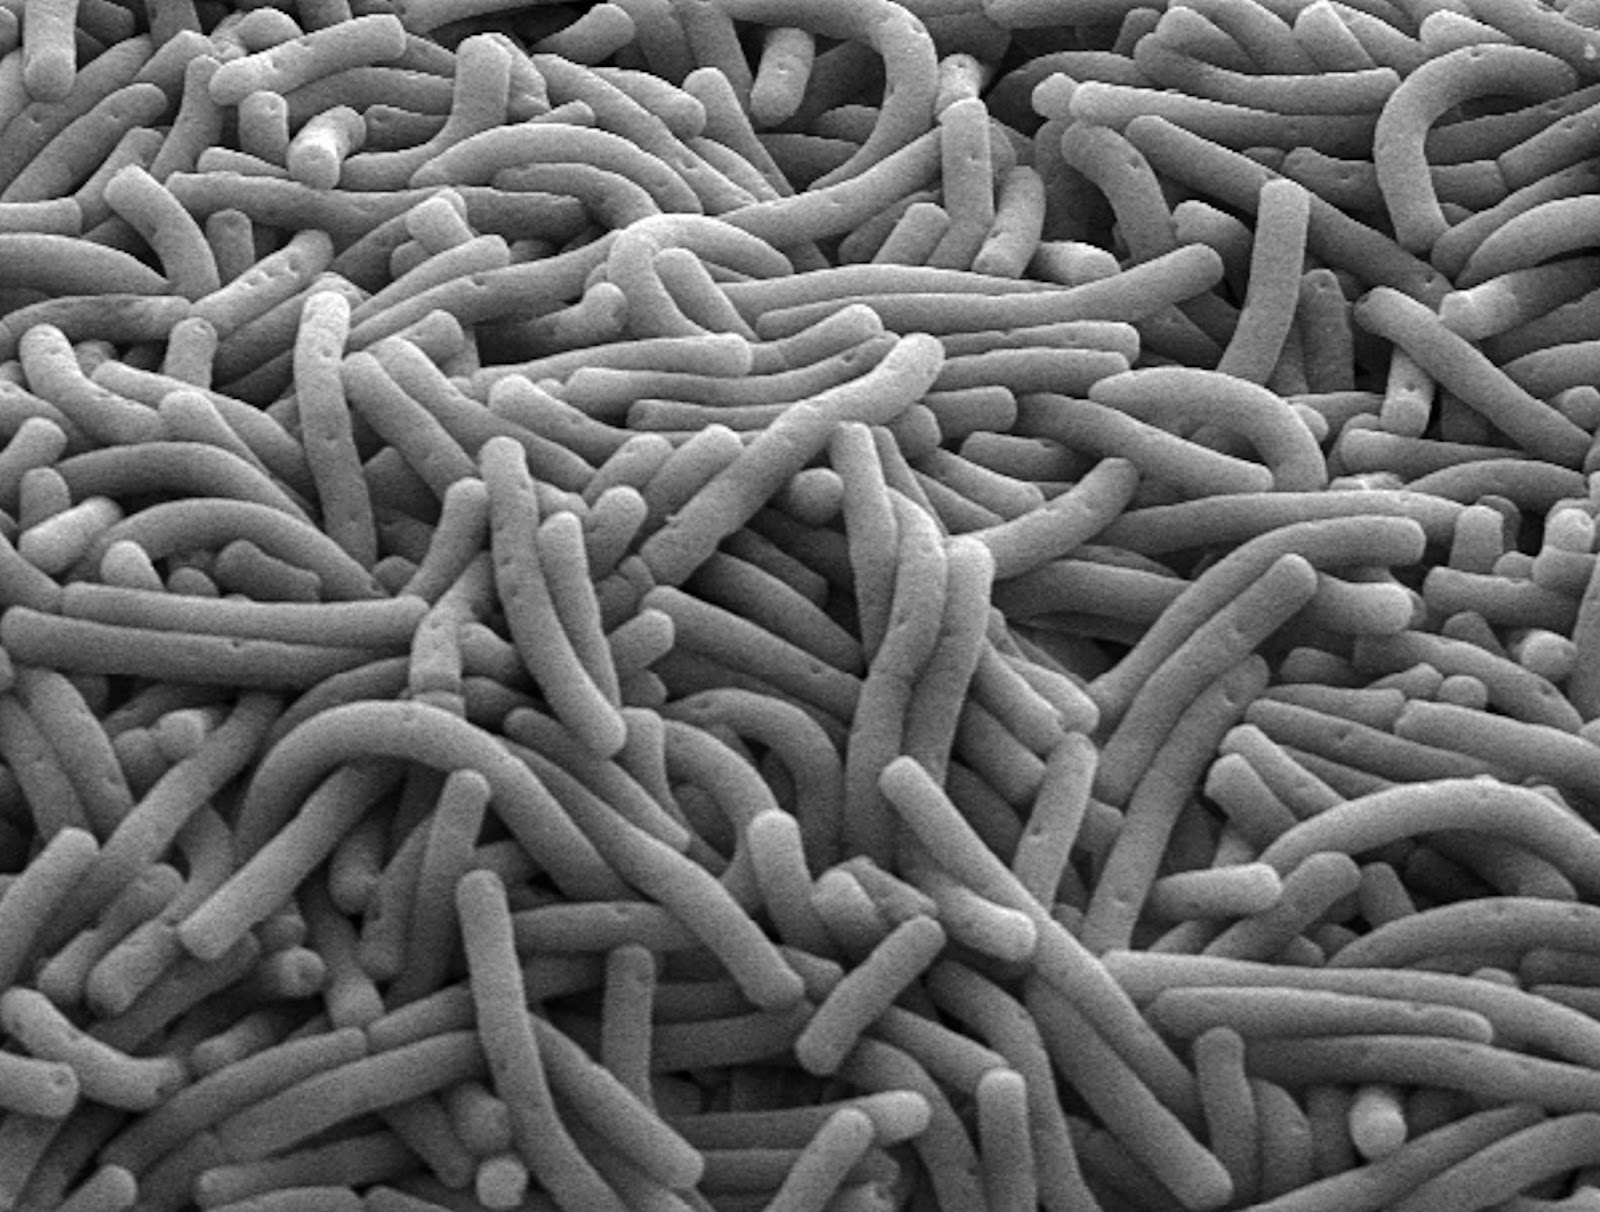 lactubacillus species Lactobacillus species are normal flora of the mouth, gastrointestinal tract, and female genital tract, where they produce lactic acid (affecting a low ph.